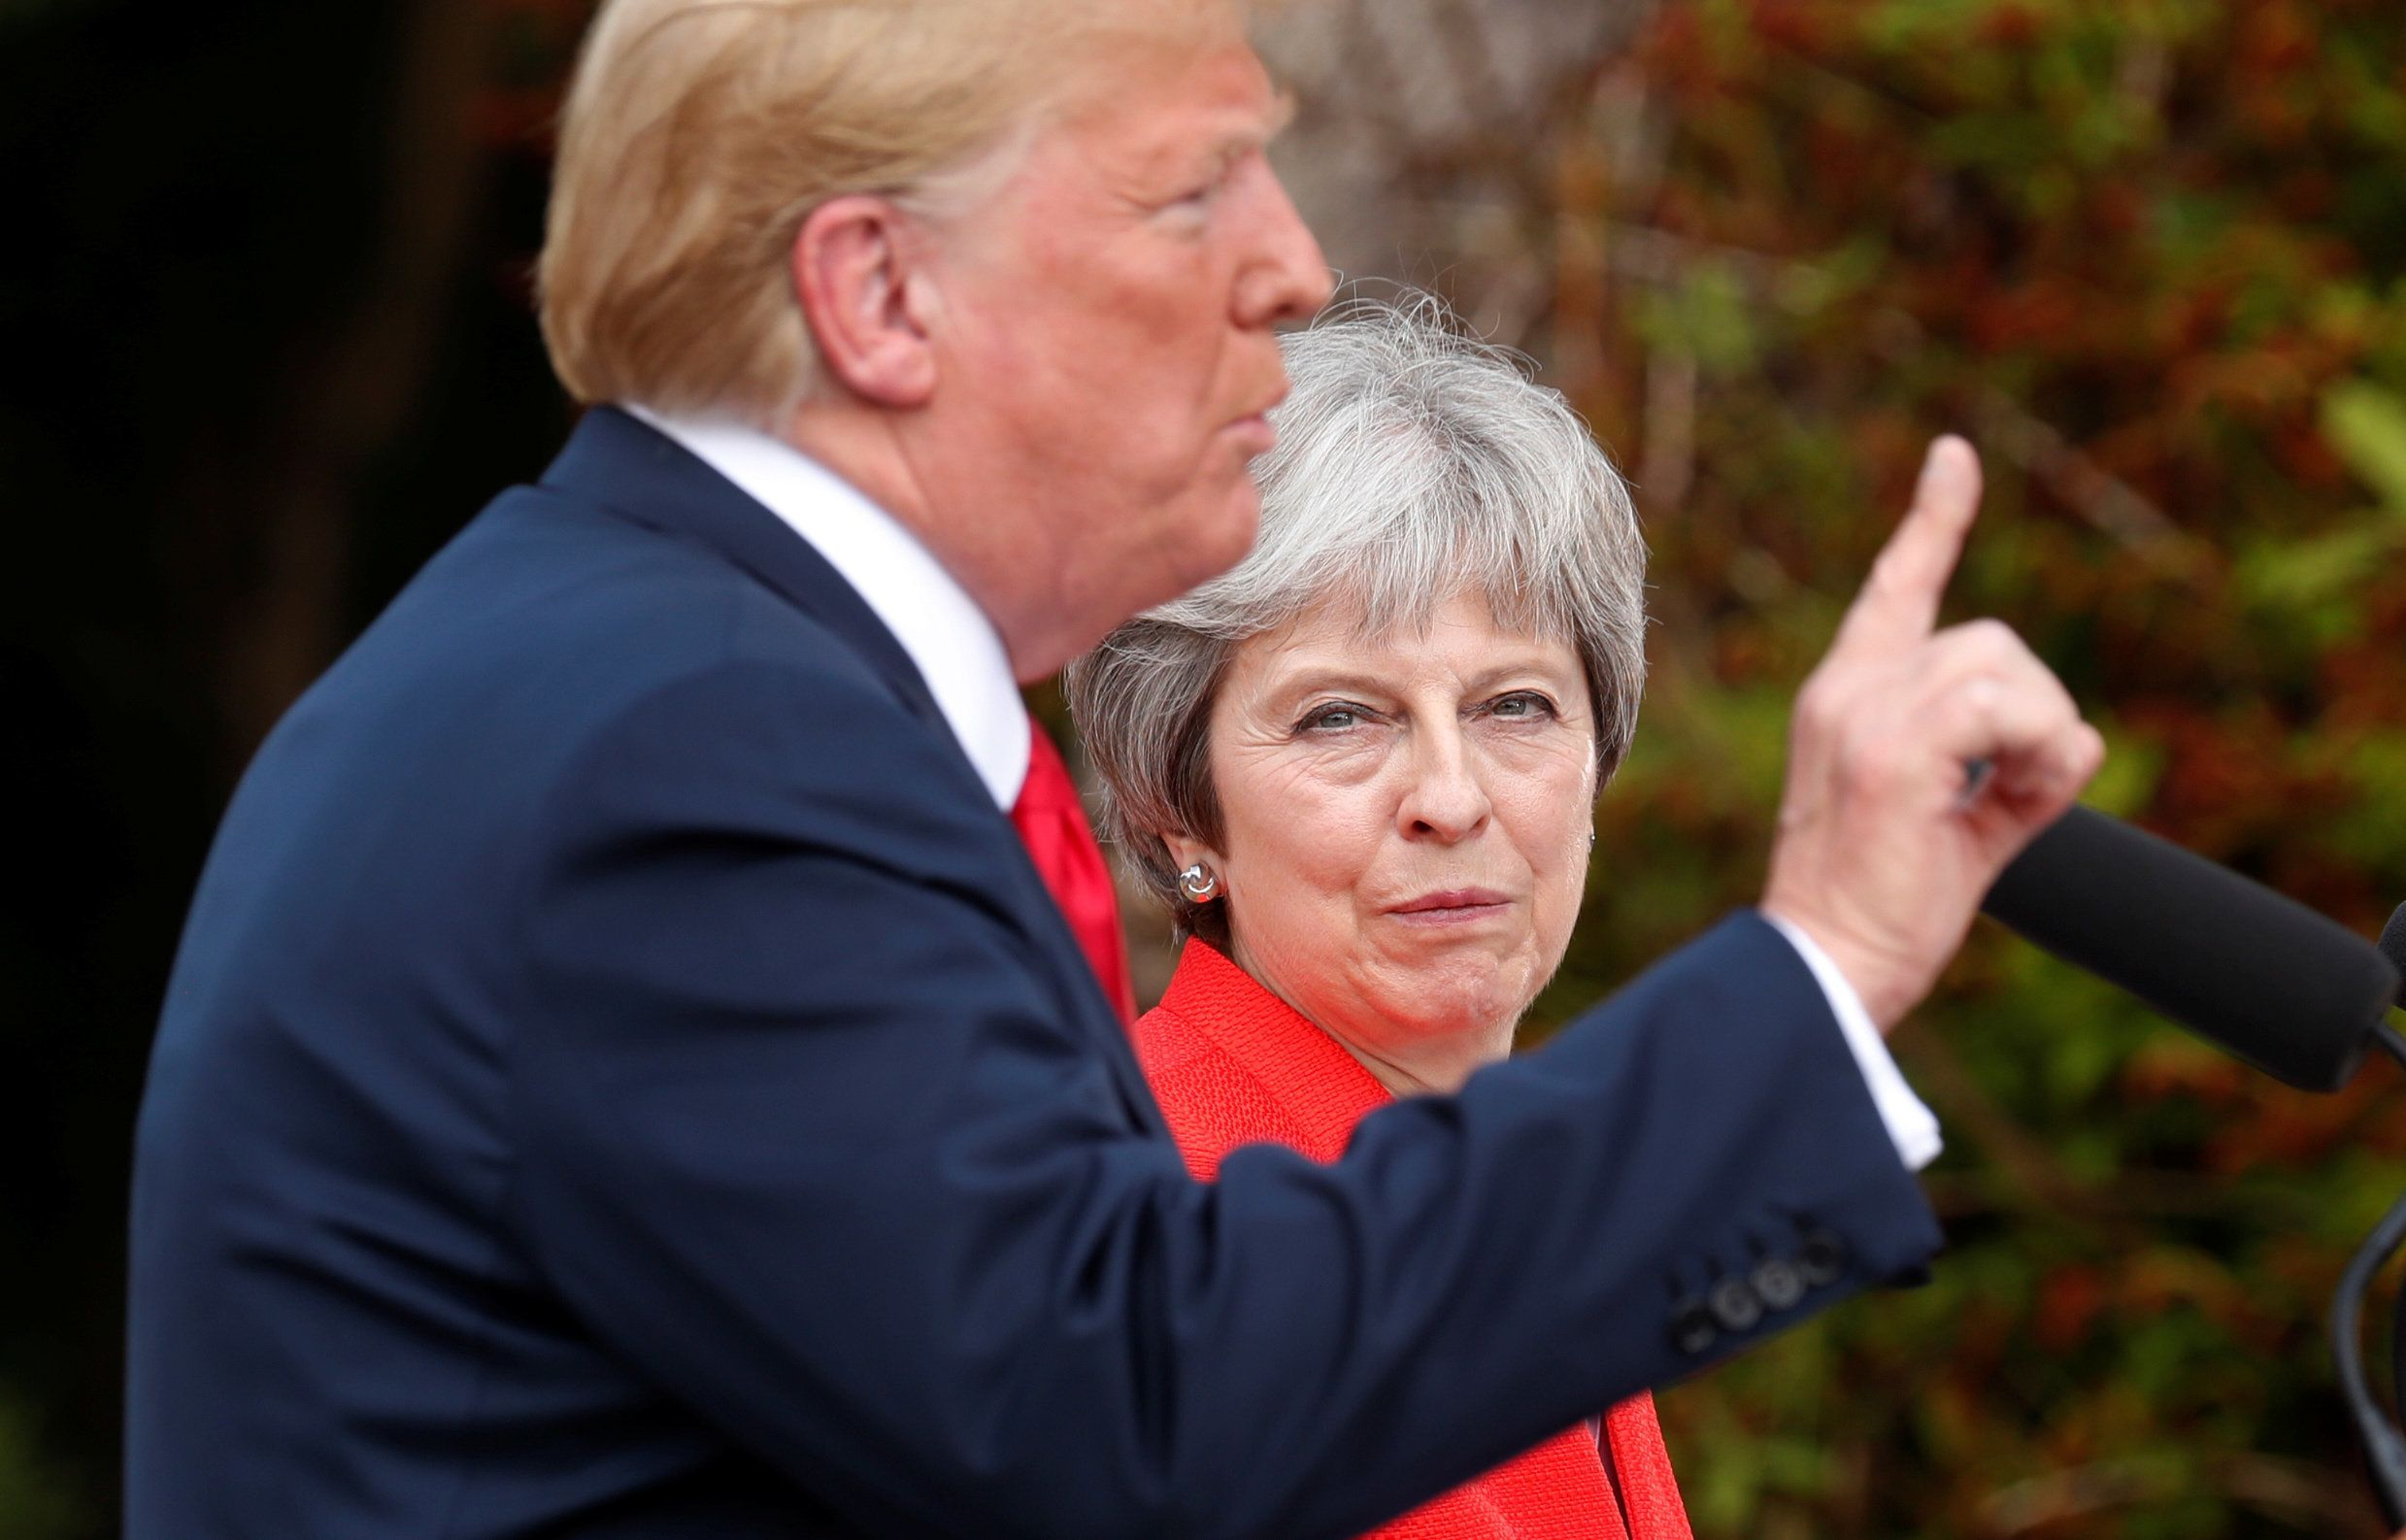 U.S. President Donald Trump and British Prime Minister Theresa May hold a press conference after their meeting at Chequers in Buckinghamshire, Britain July 13, 2018. REUTERS/Kevin Lamarque